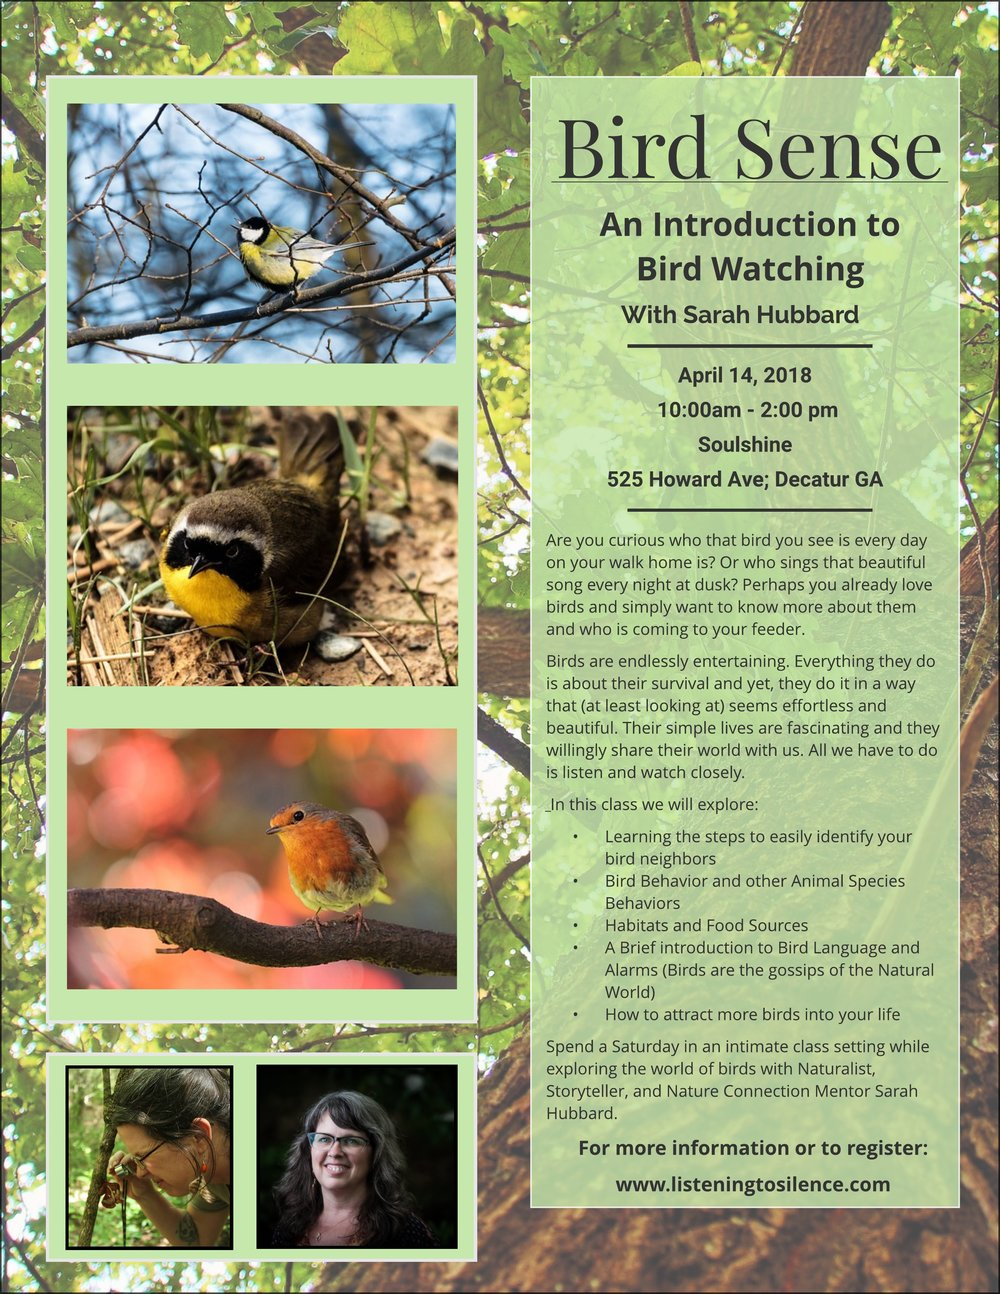 Bird Sense Feb 2018.jpeg